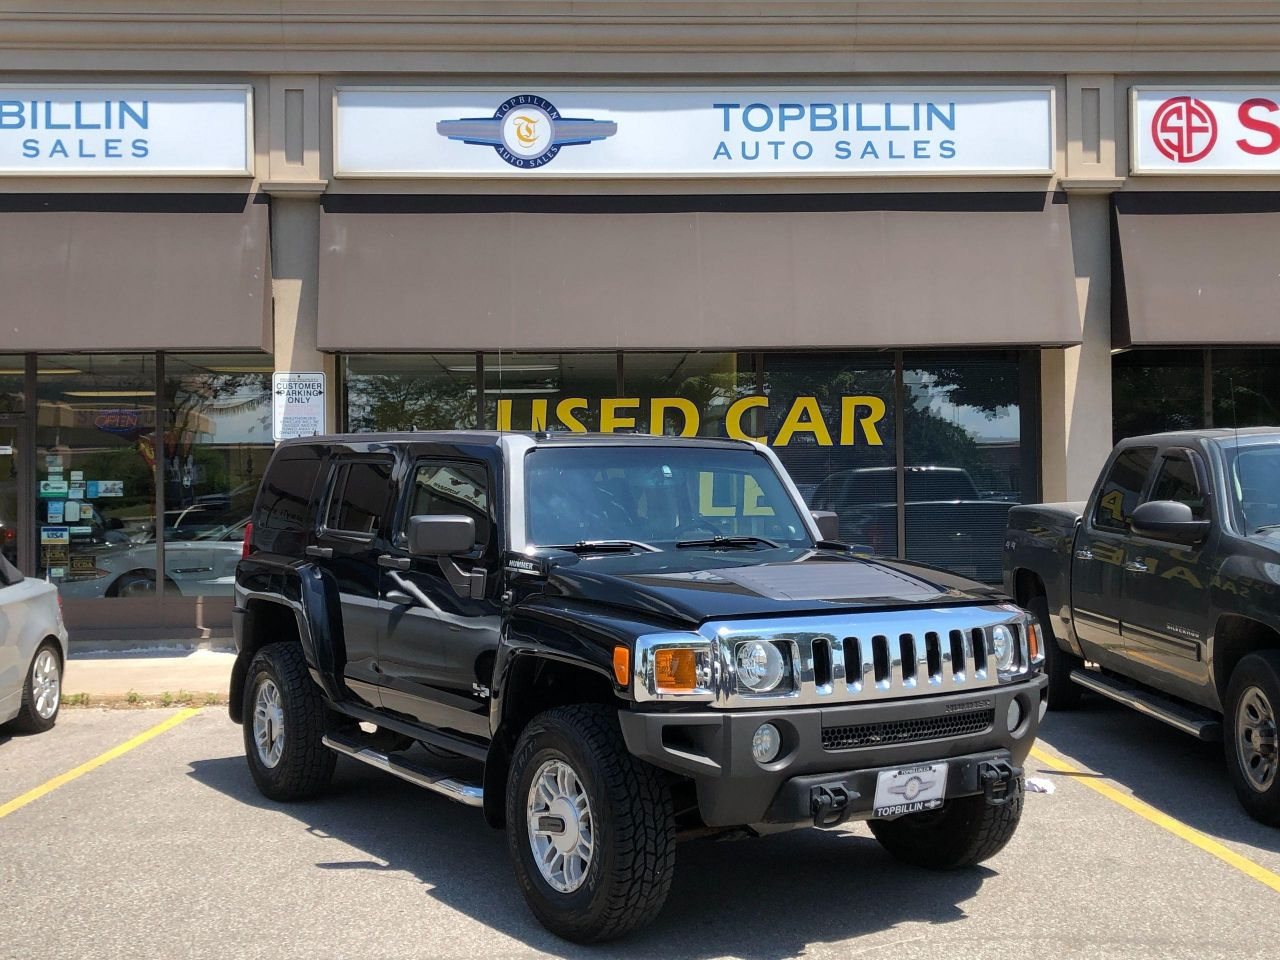 2006 Hummer H3 5 Speed Manual